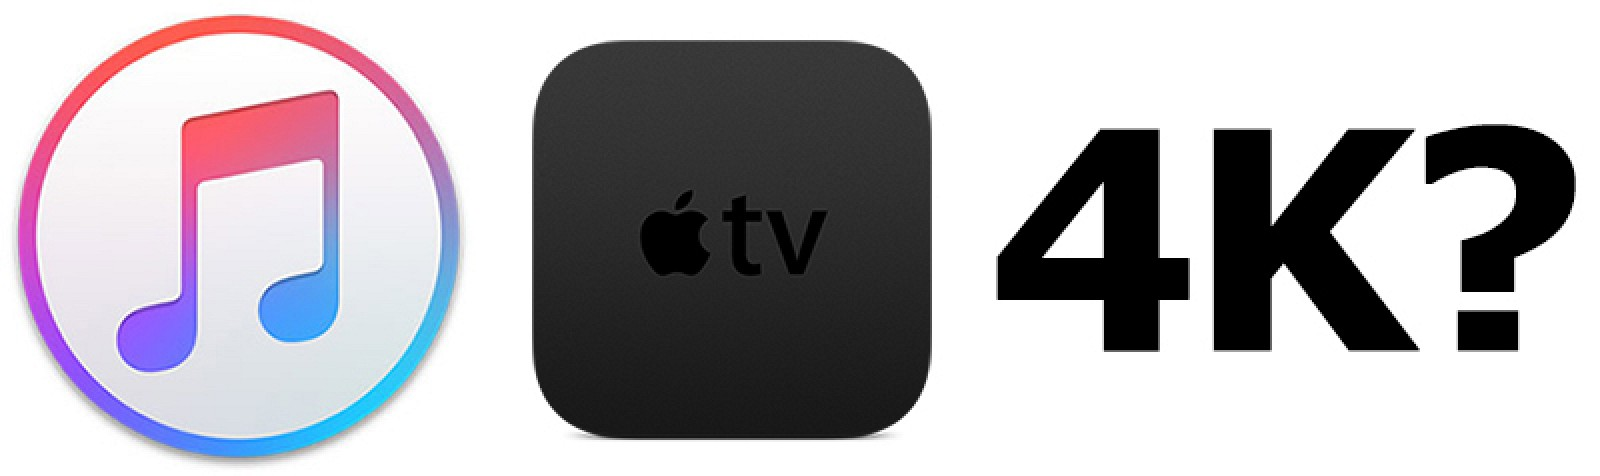 Apple Listing Select Movies as 4K and HDR in iTunes Purchase History